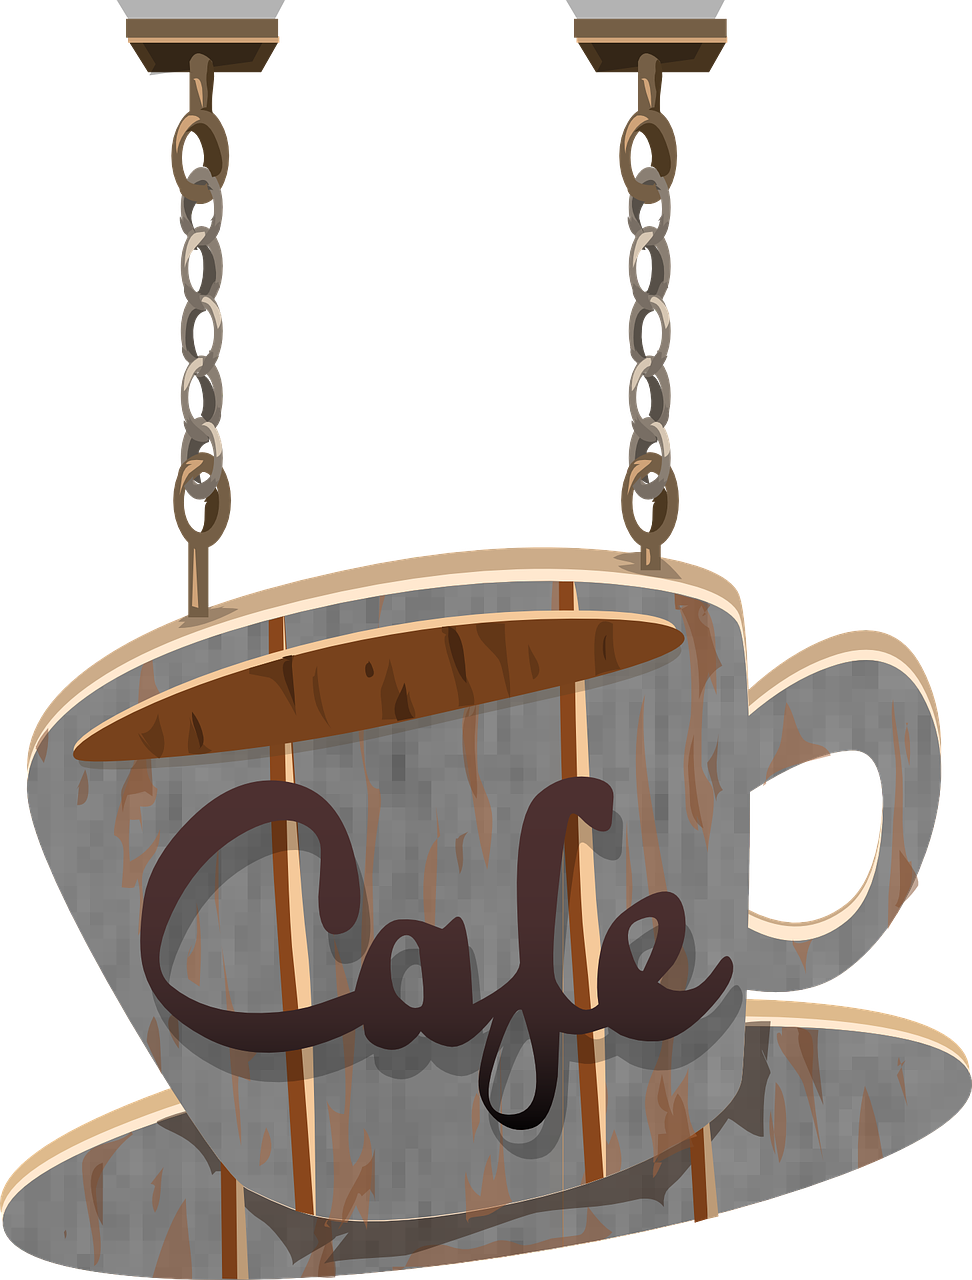 coffee quotes coffee coffee quotes en j d salinger language